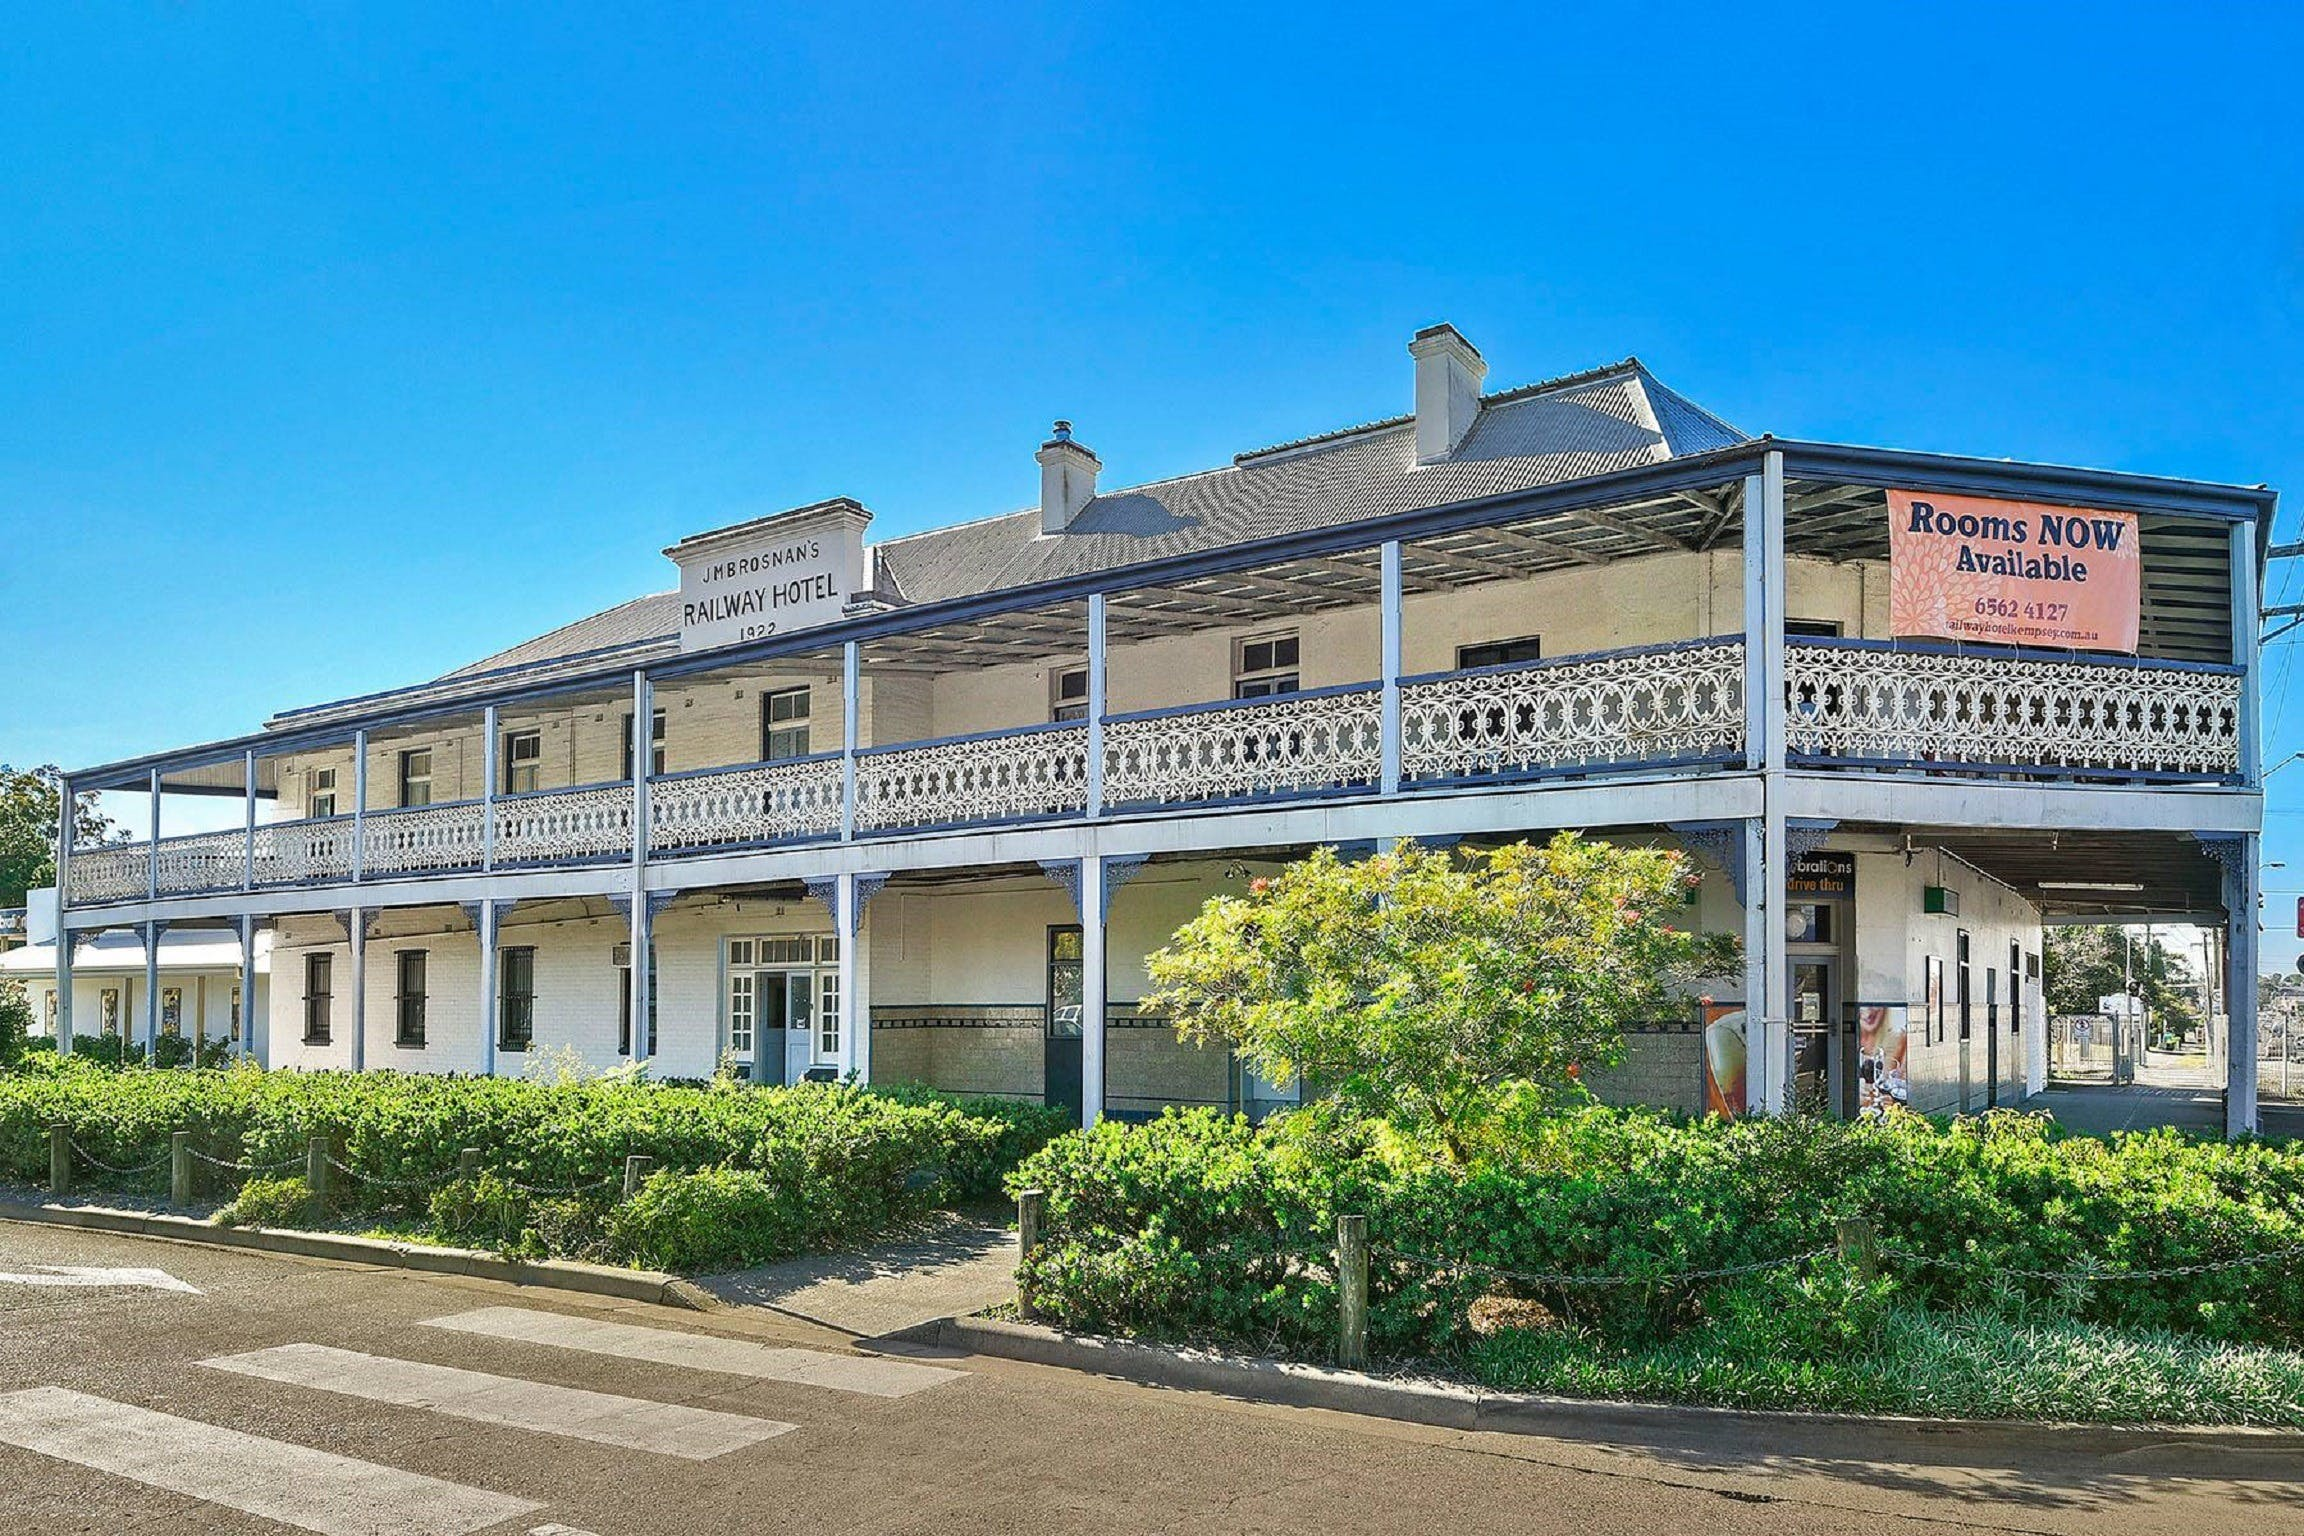 Railway Hotel Kempsey - Accommodation in Surfers Paradise